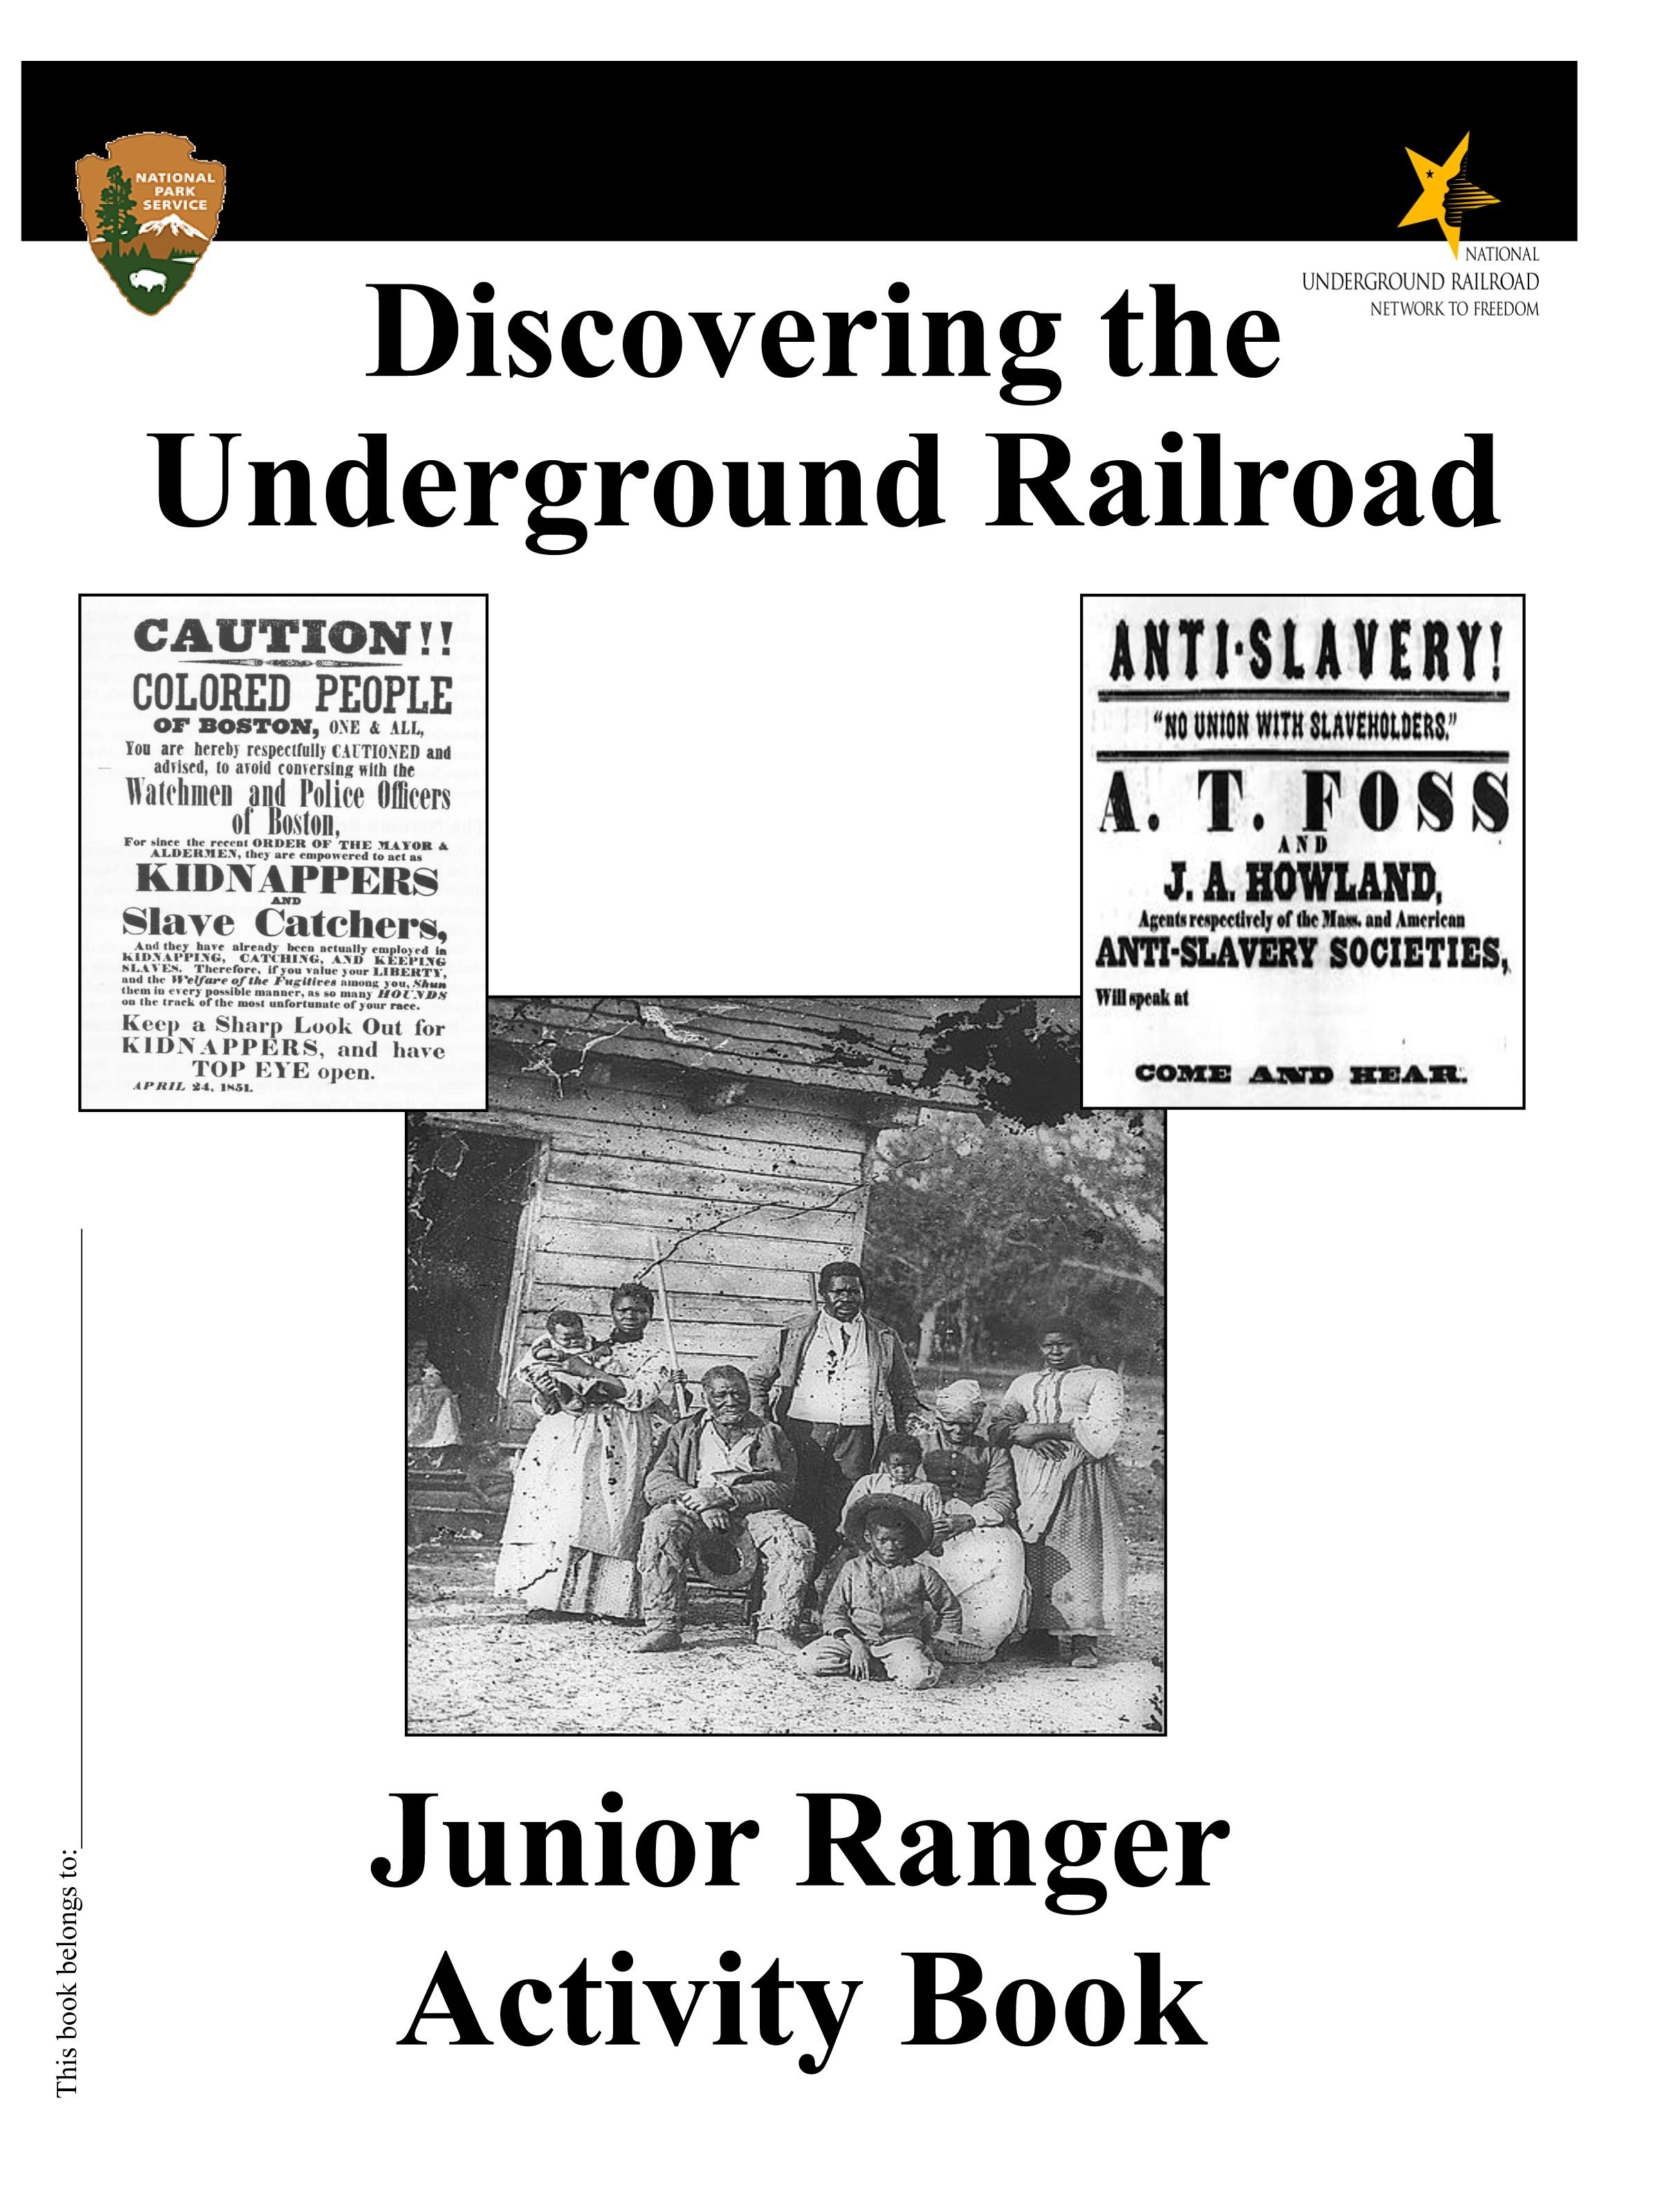 Week 1 Underground Railroad